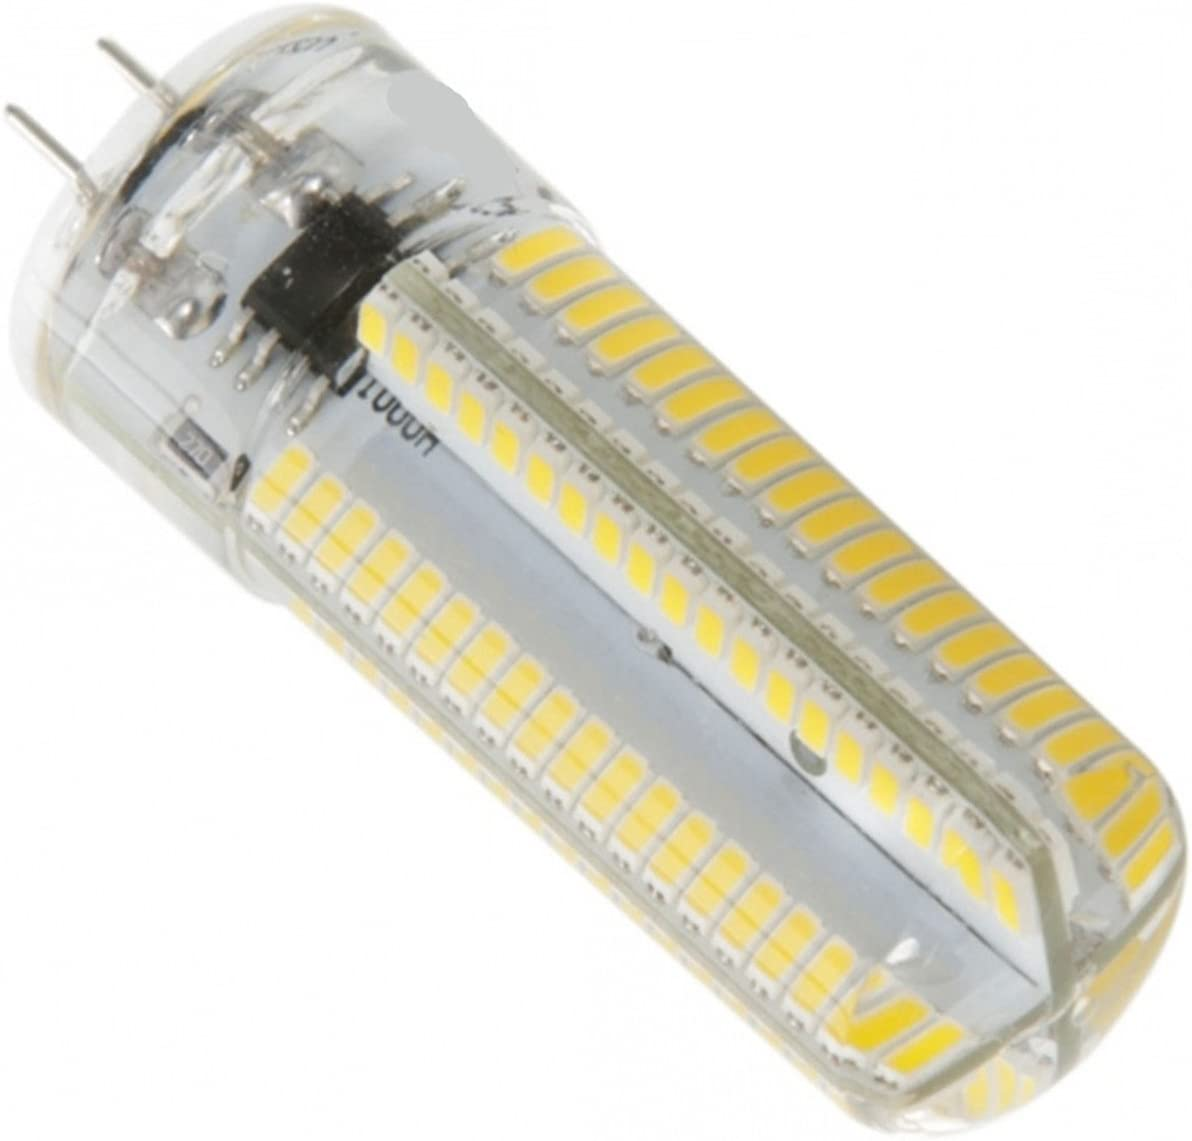 Light Bulbs Inexpensive G4 Dimmable 4W 152 LED Warm 300-400 SMD LM Whit 3014 Ranking TOP19